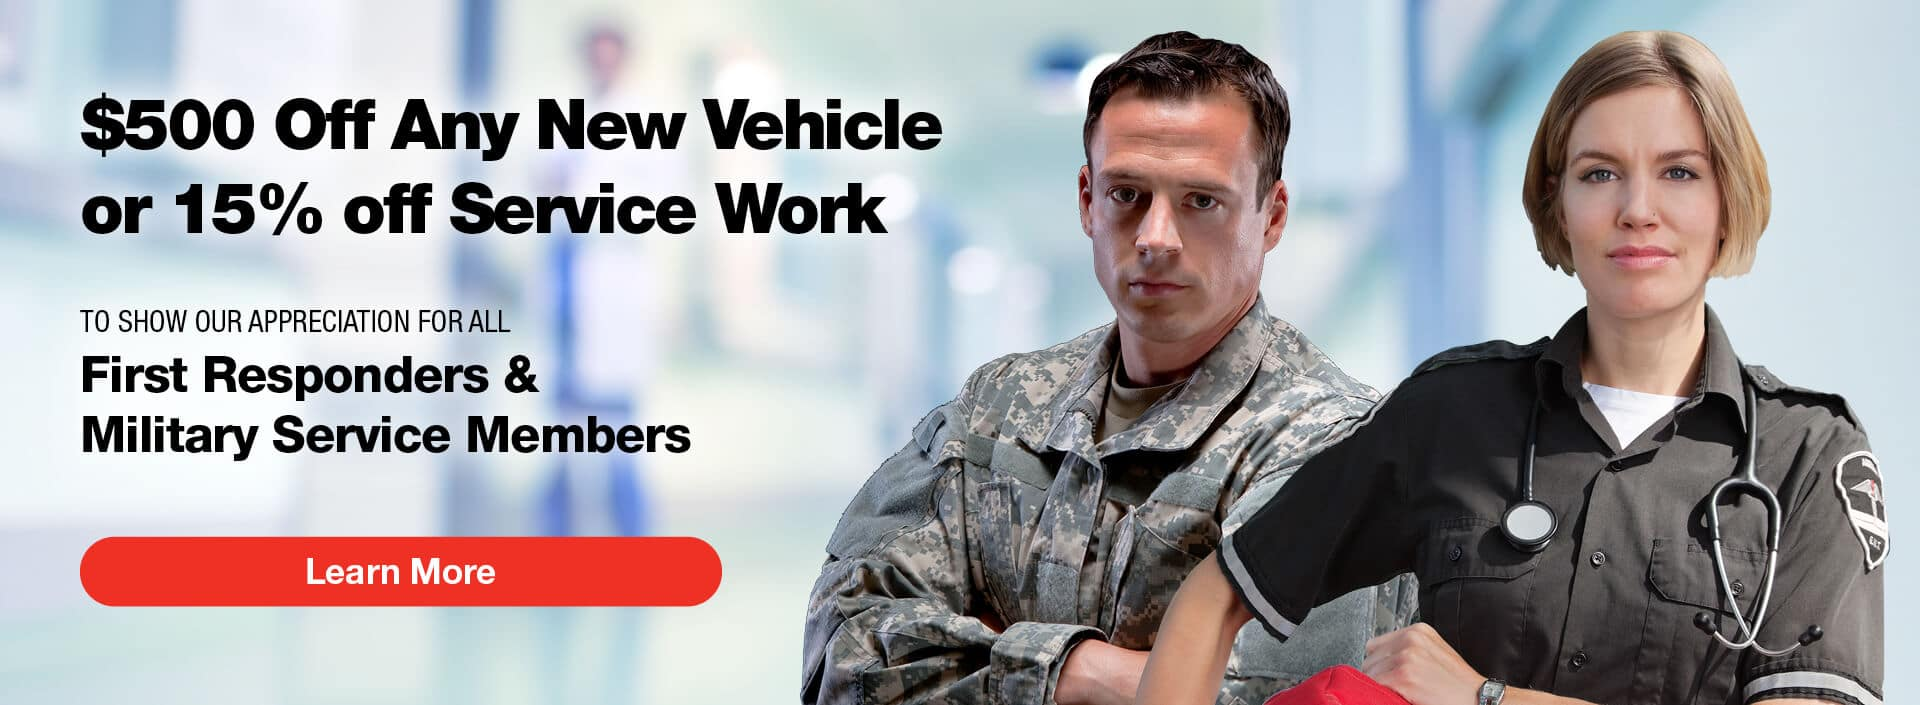 First Responders: 15% Off Service